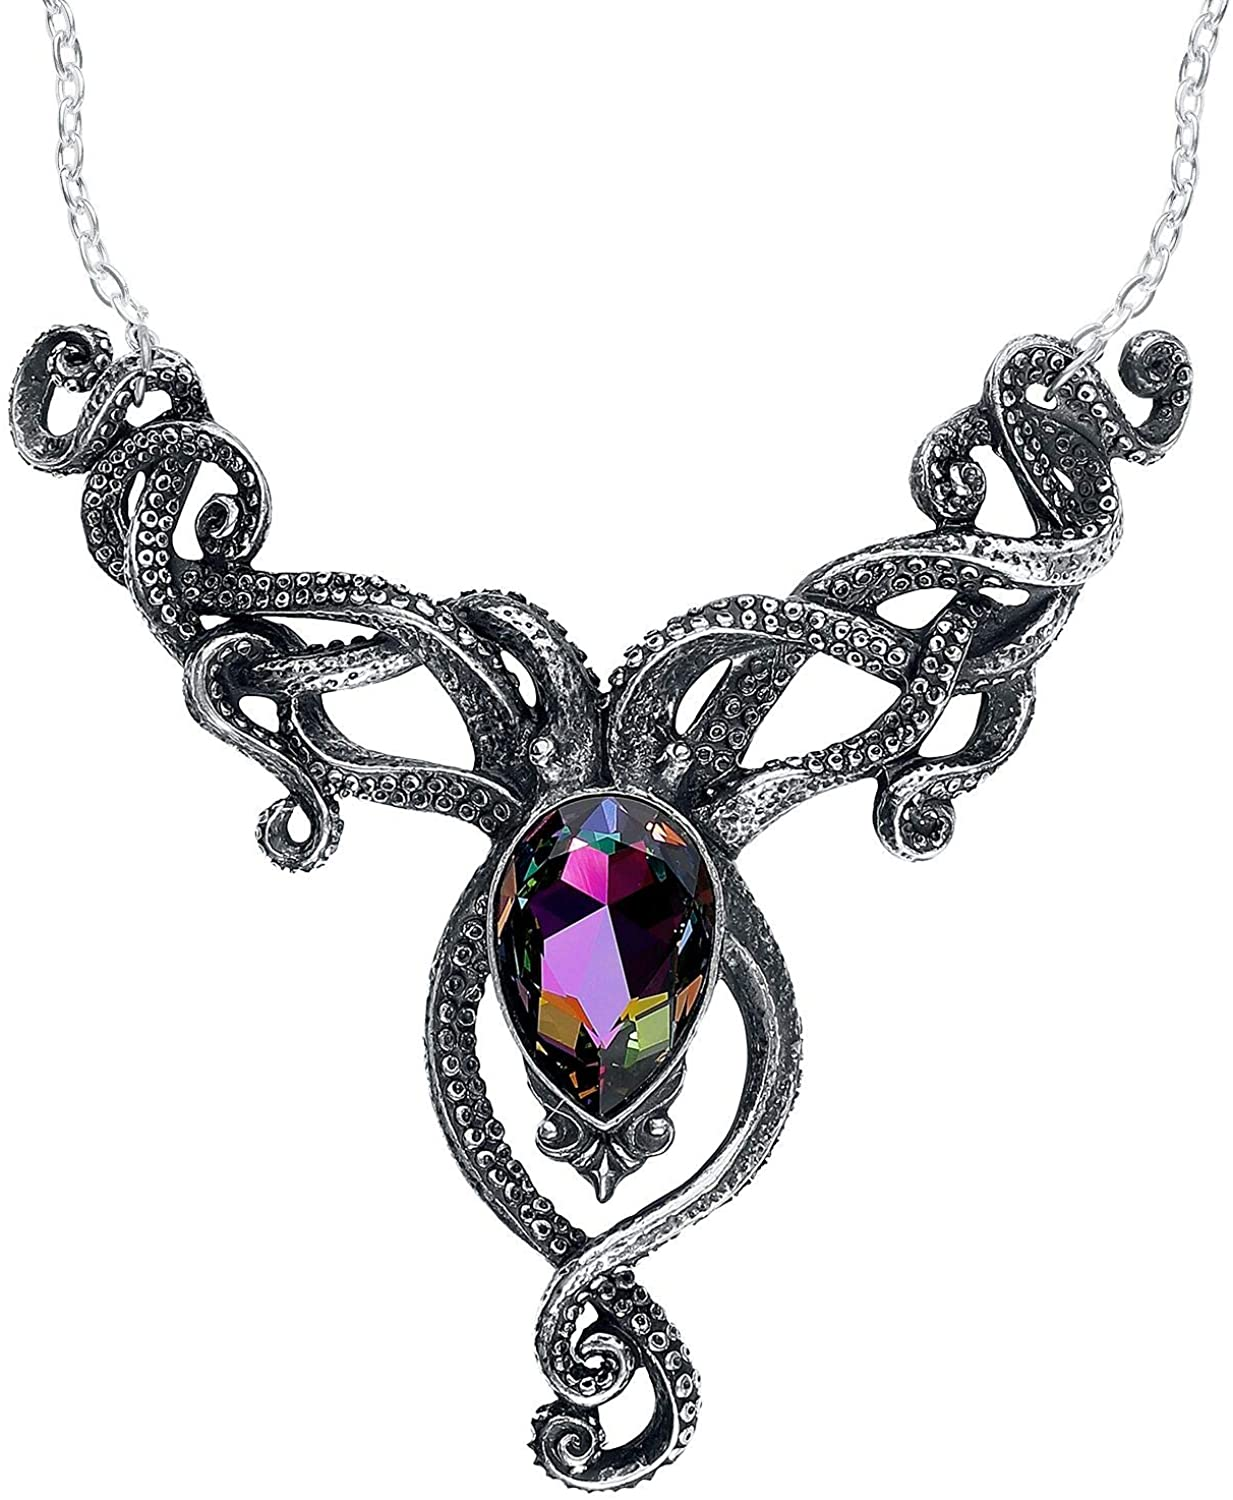 Alchemy of England Holiday Occasion Fashion Jewelry Kraken Necklace